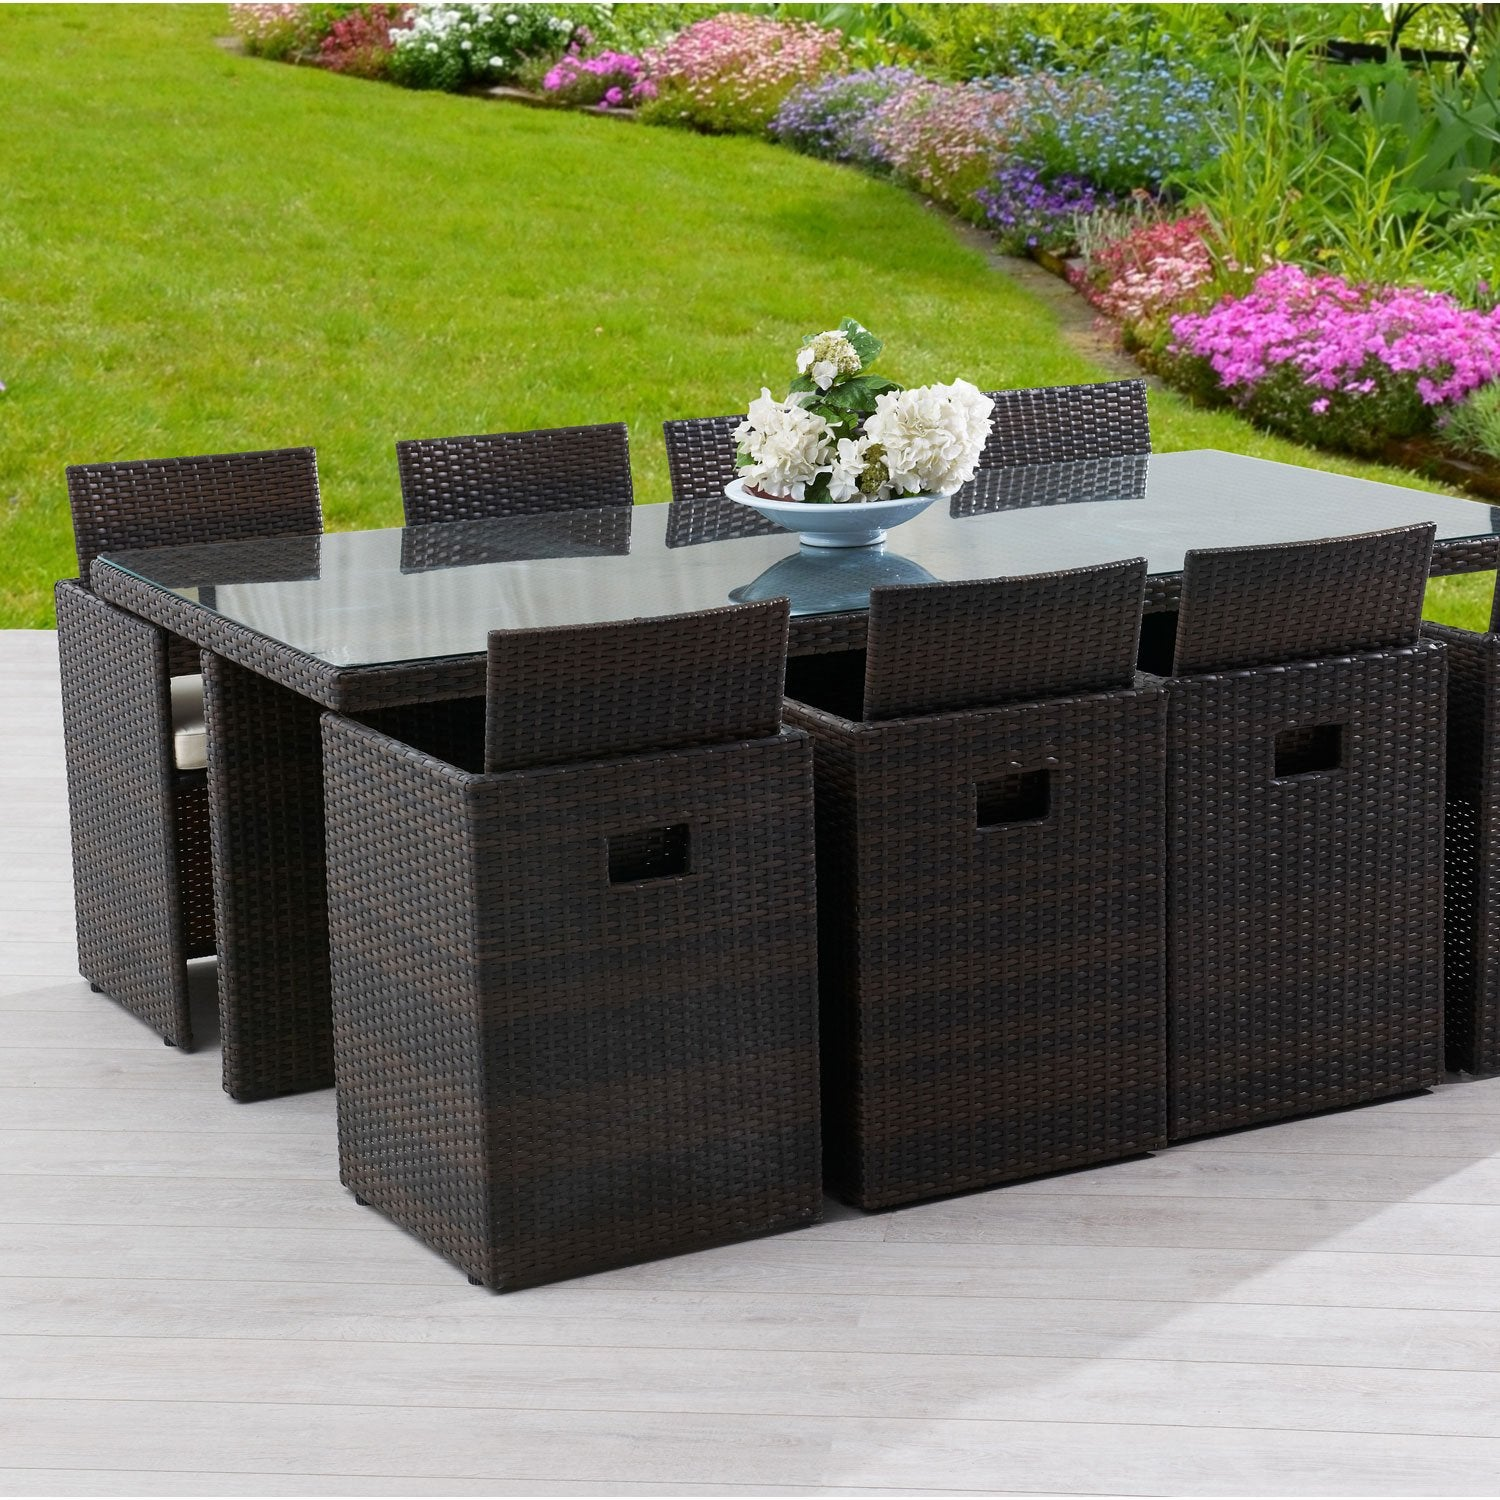 Salon de jardin encastrable r sine tress e marron 1 table - Soldes table de jardin ...